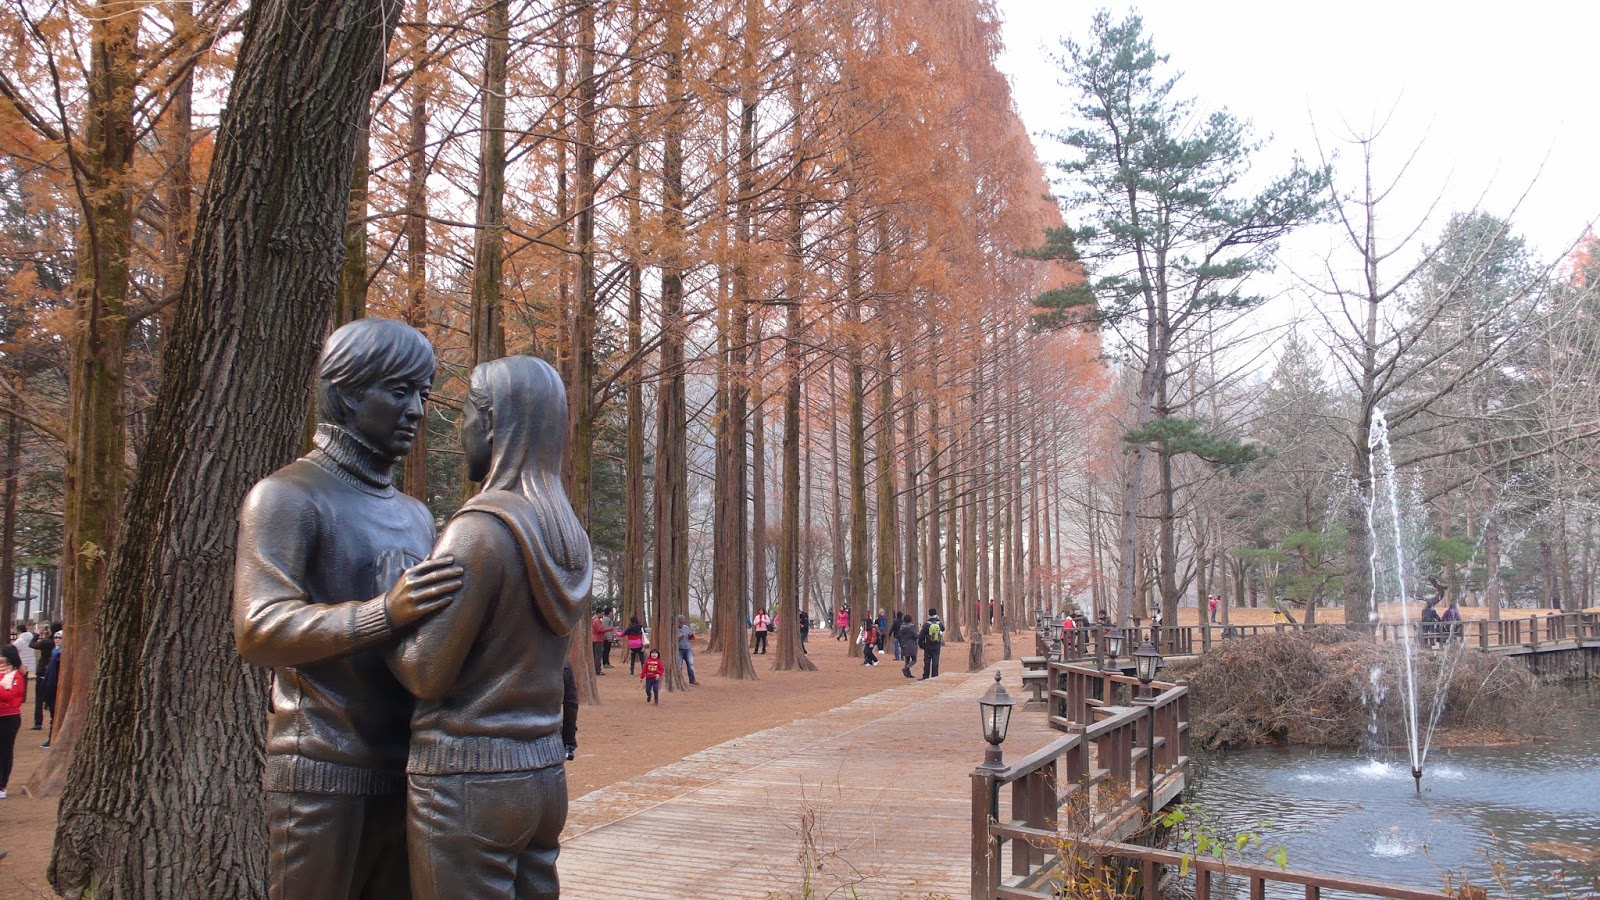 9 Romantic Things To Do In South Korea Autumn Summit Holidays 8d 6n Memorable Jeju Lotte World Tower 6 Retrace The Footsteps Of Winter Sonata On Namiseom Island